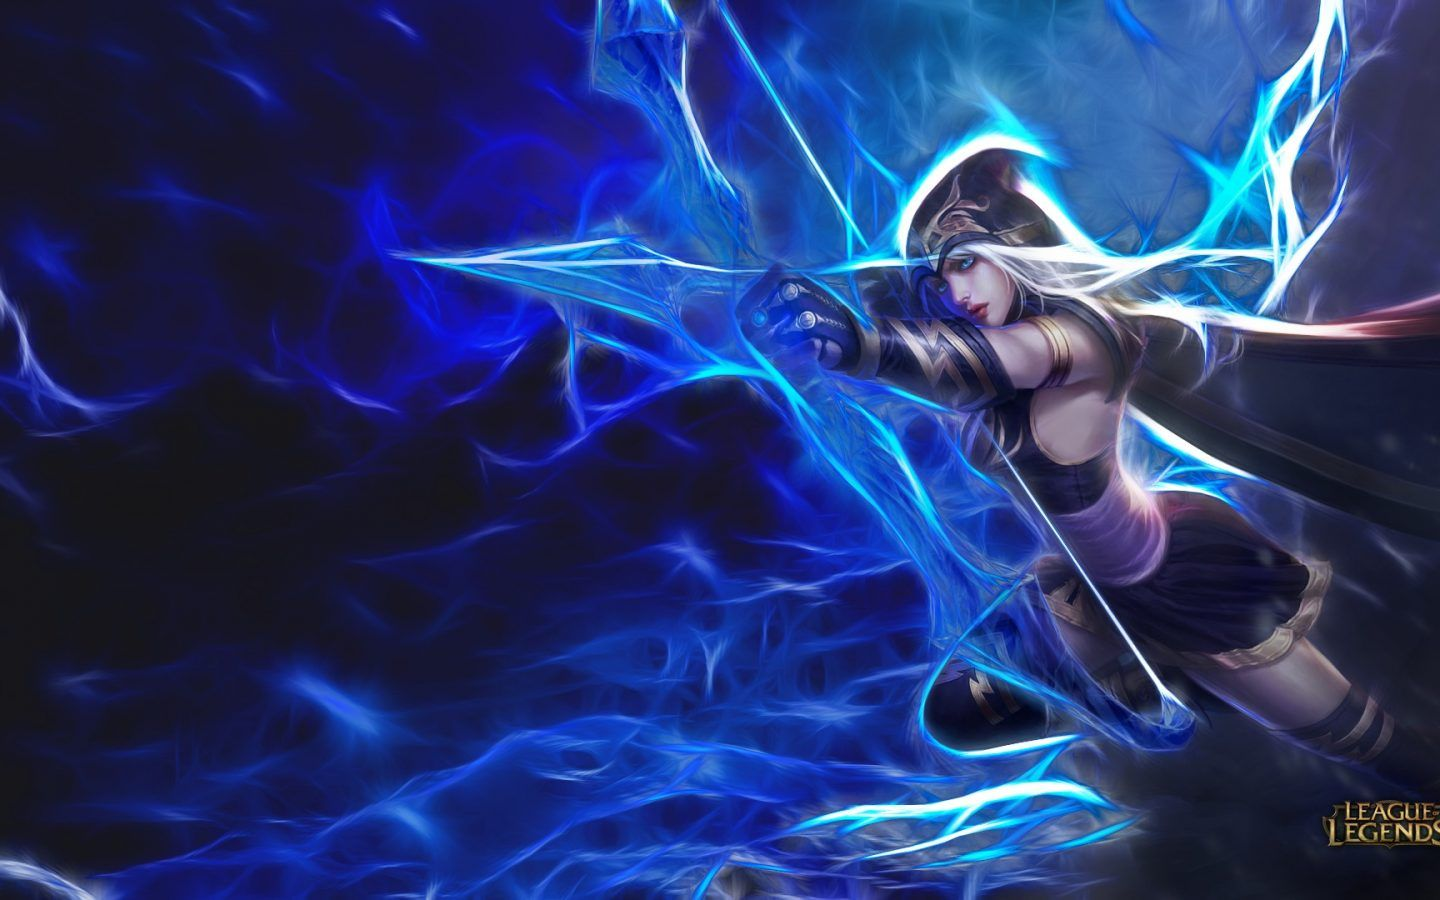 Ashe League Of Legends Archer Artistic Hd Wallpapers For Mobile